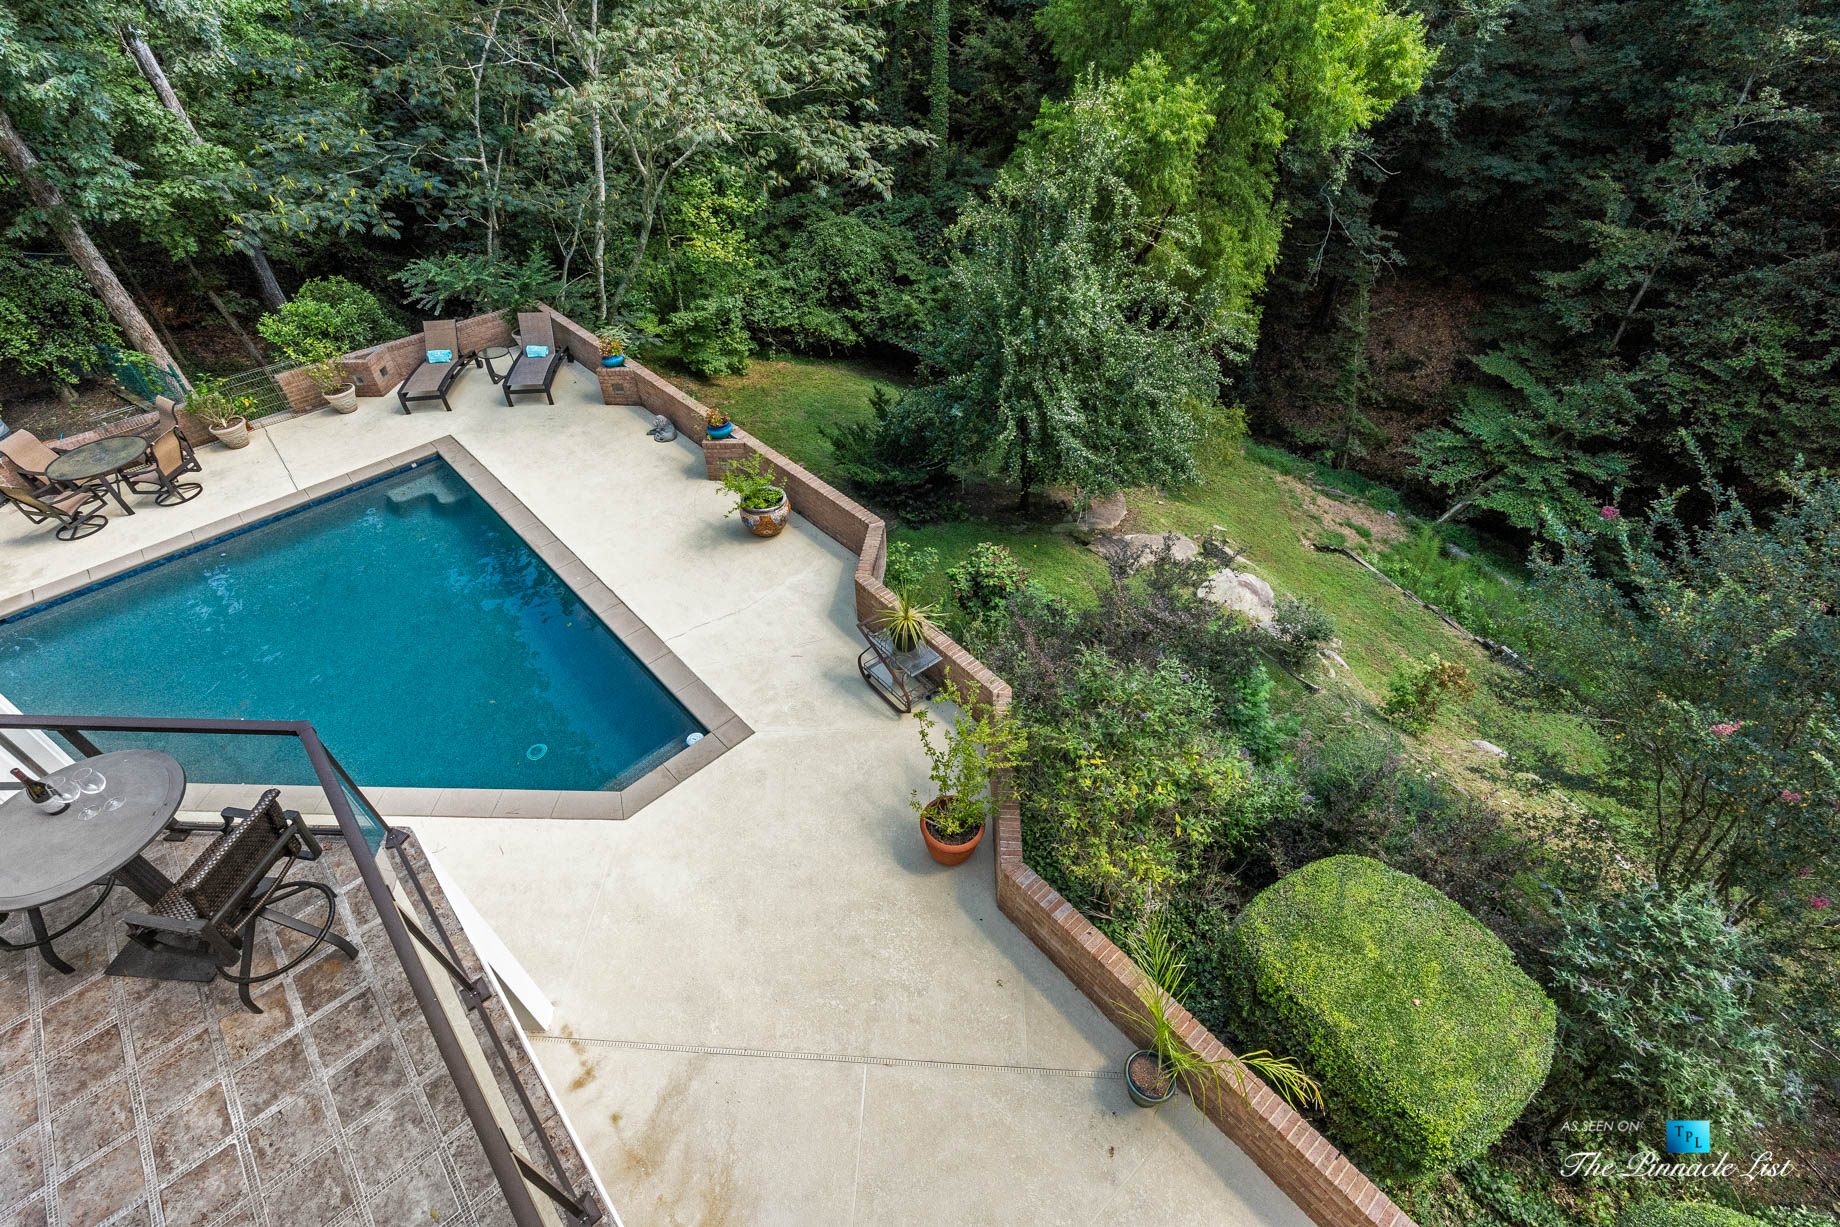 3906 Paces Ferry Rd NW, Atlanta, GA, USA - Master Bedroom Private Deck Overlooking Pool - Luxury Real Estate - Buckhead Home